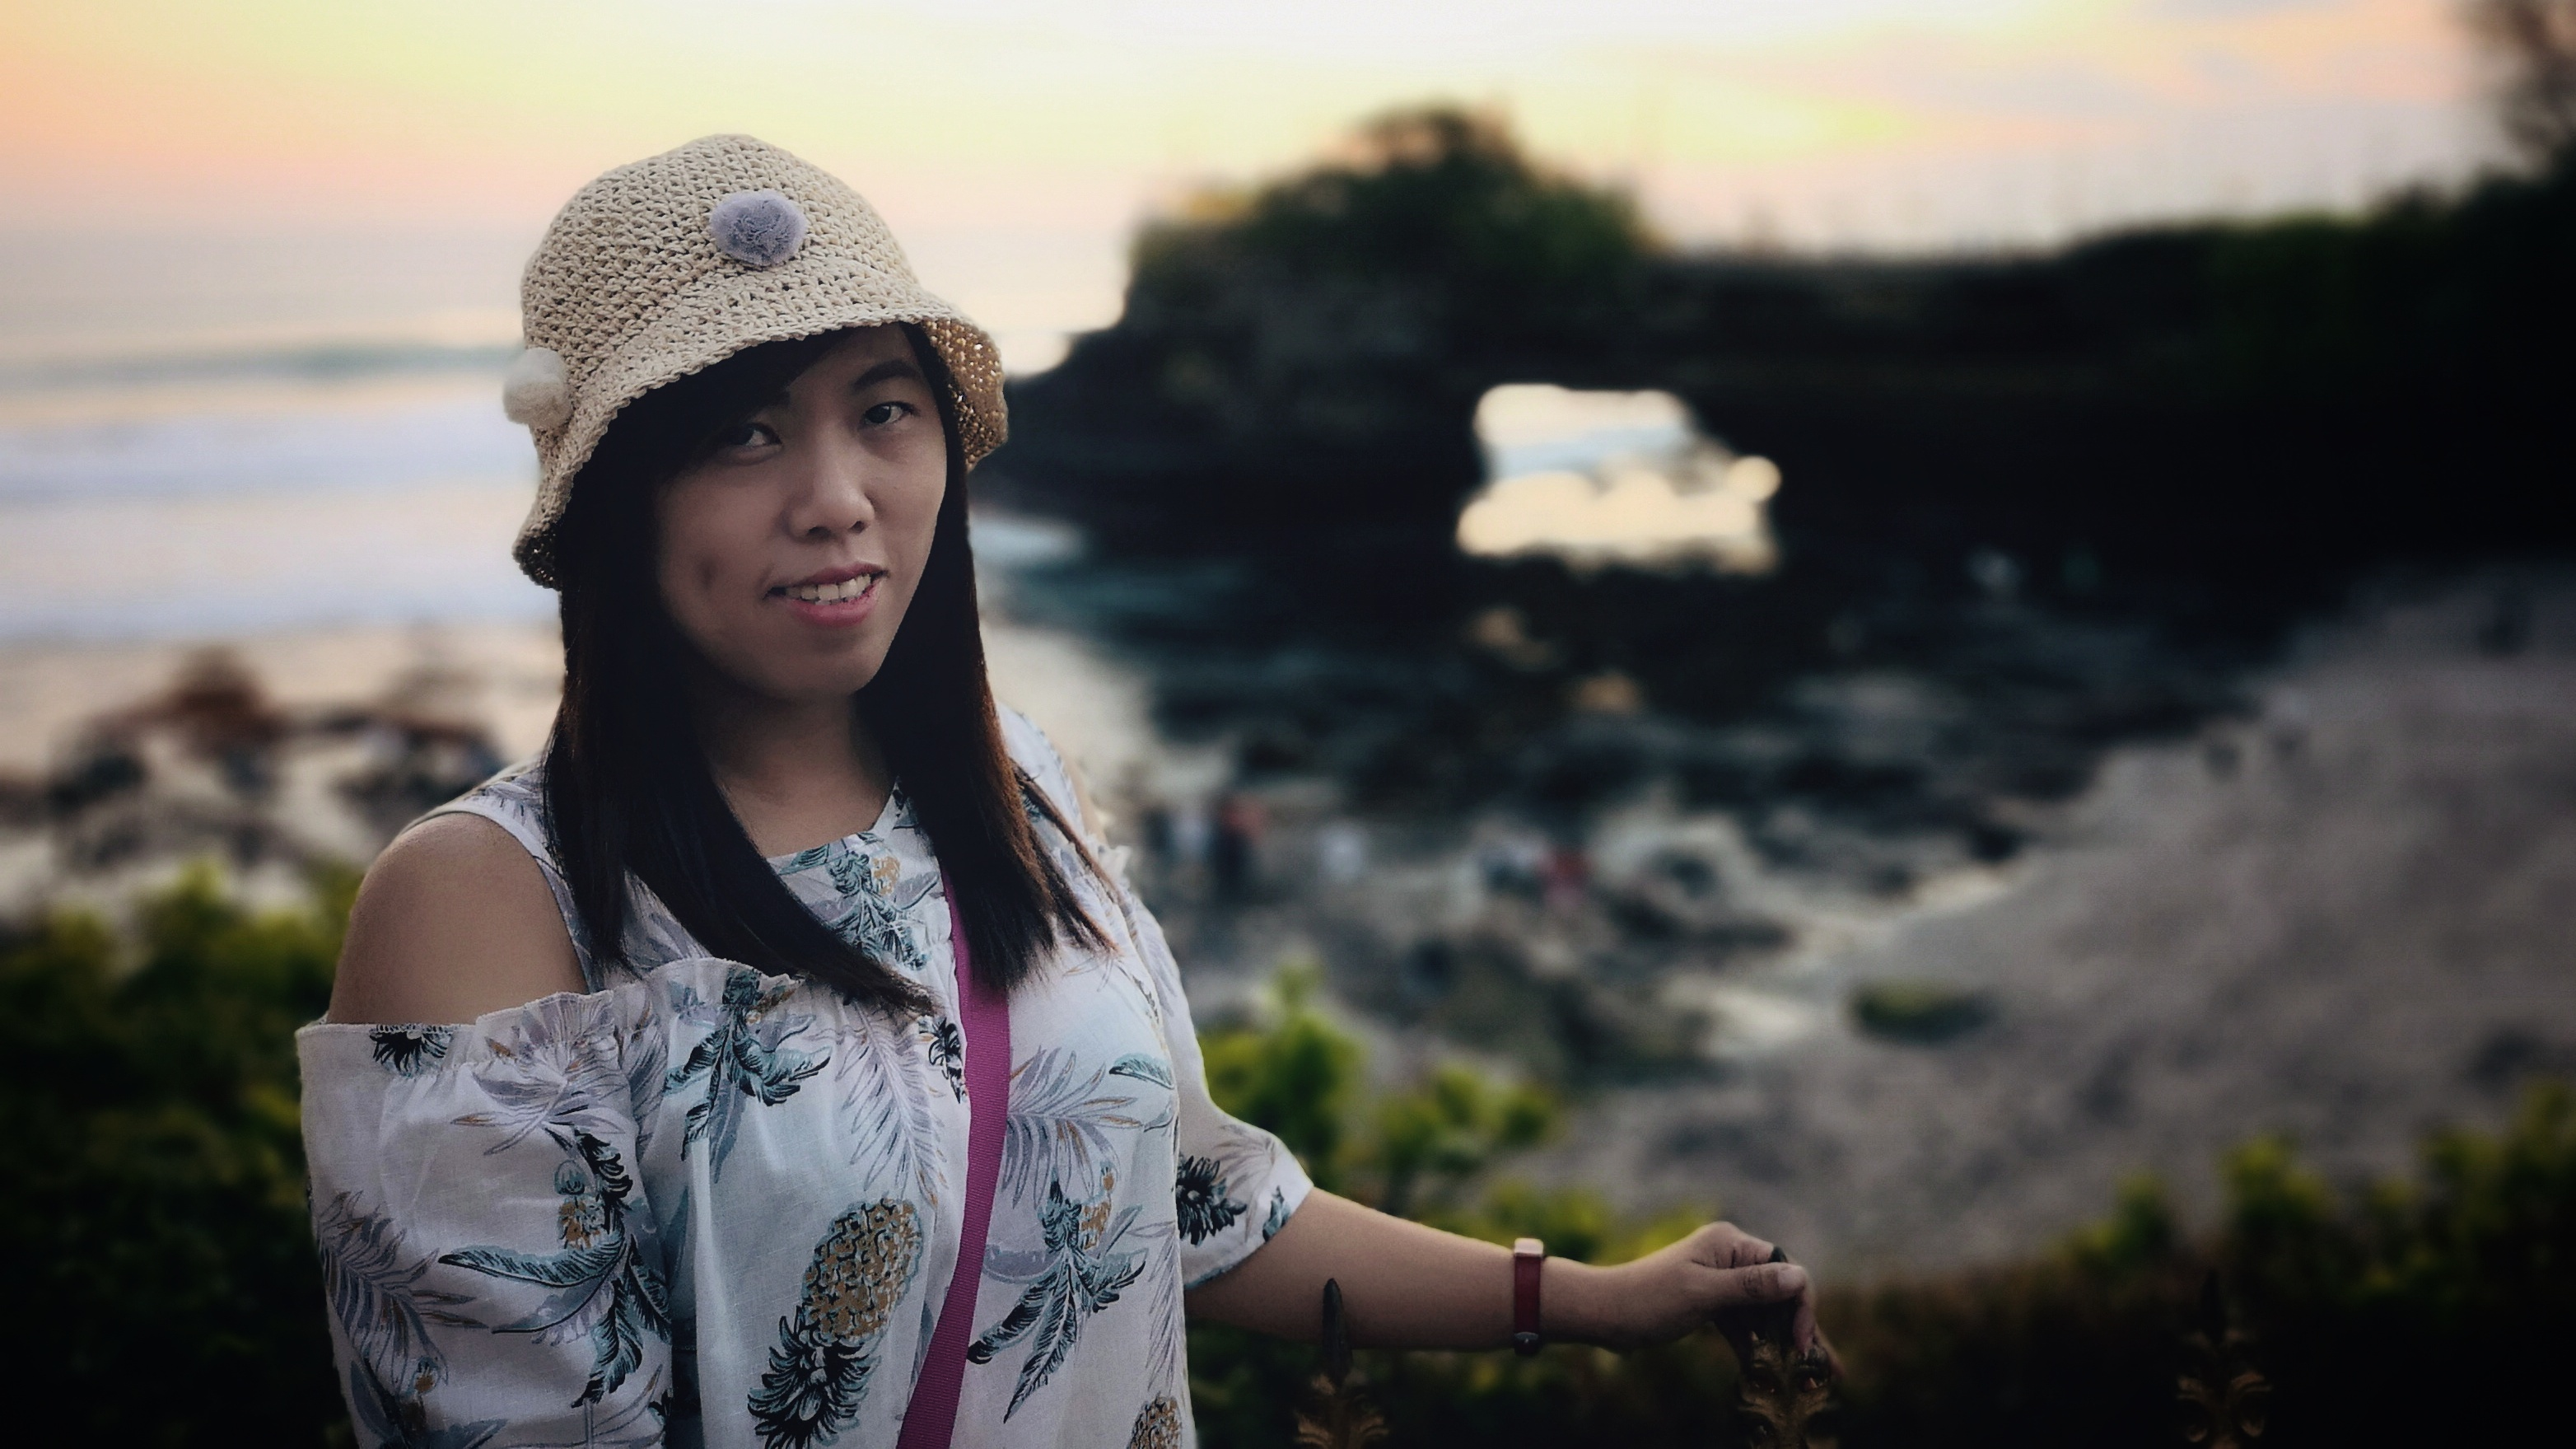 Potrait Photo di Karang Bolong - Tanah Lot